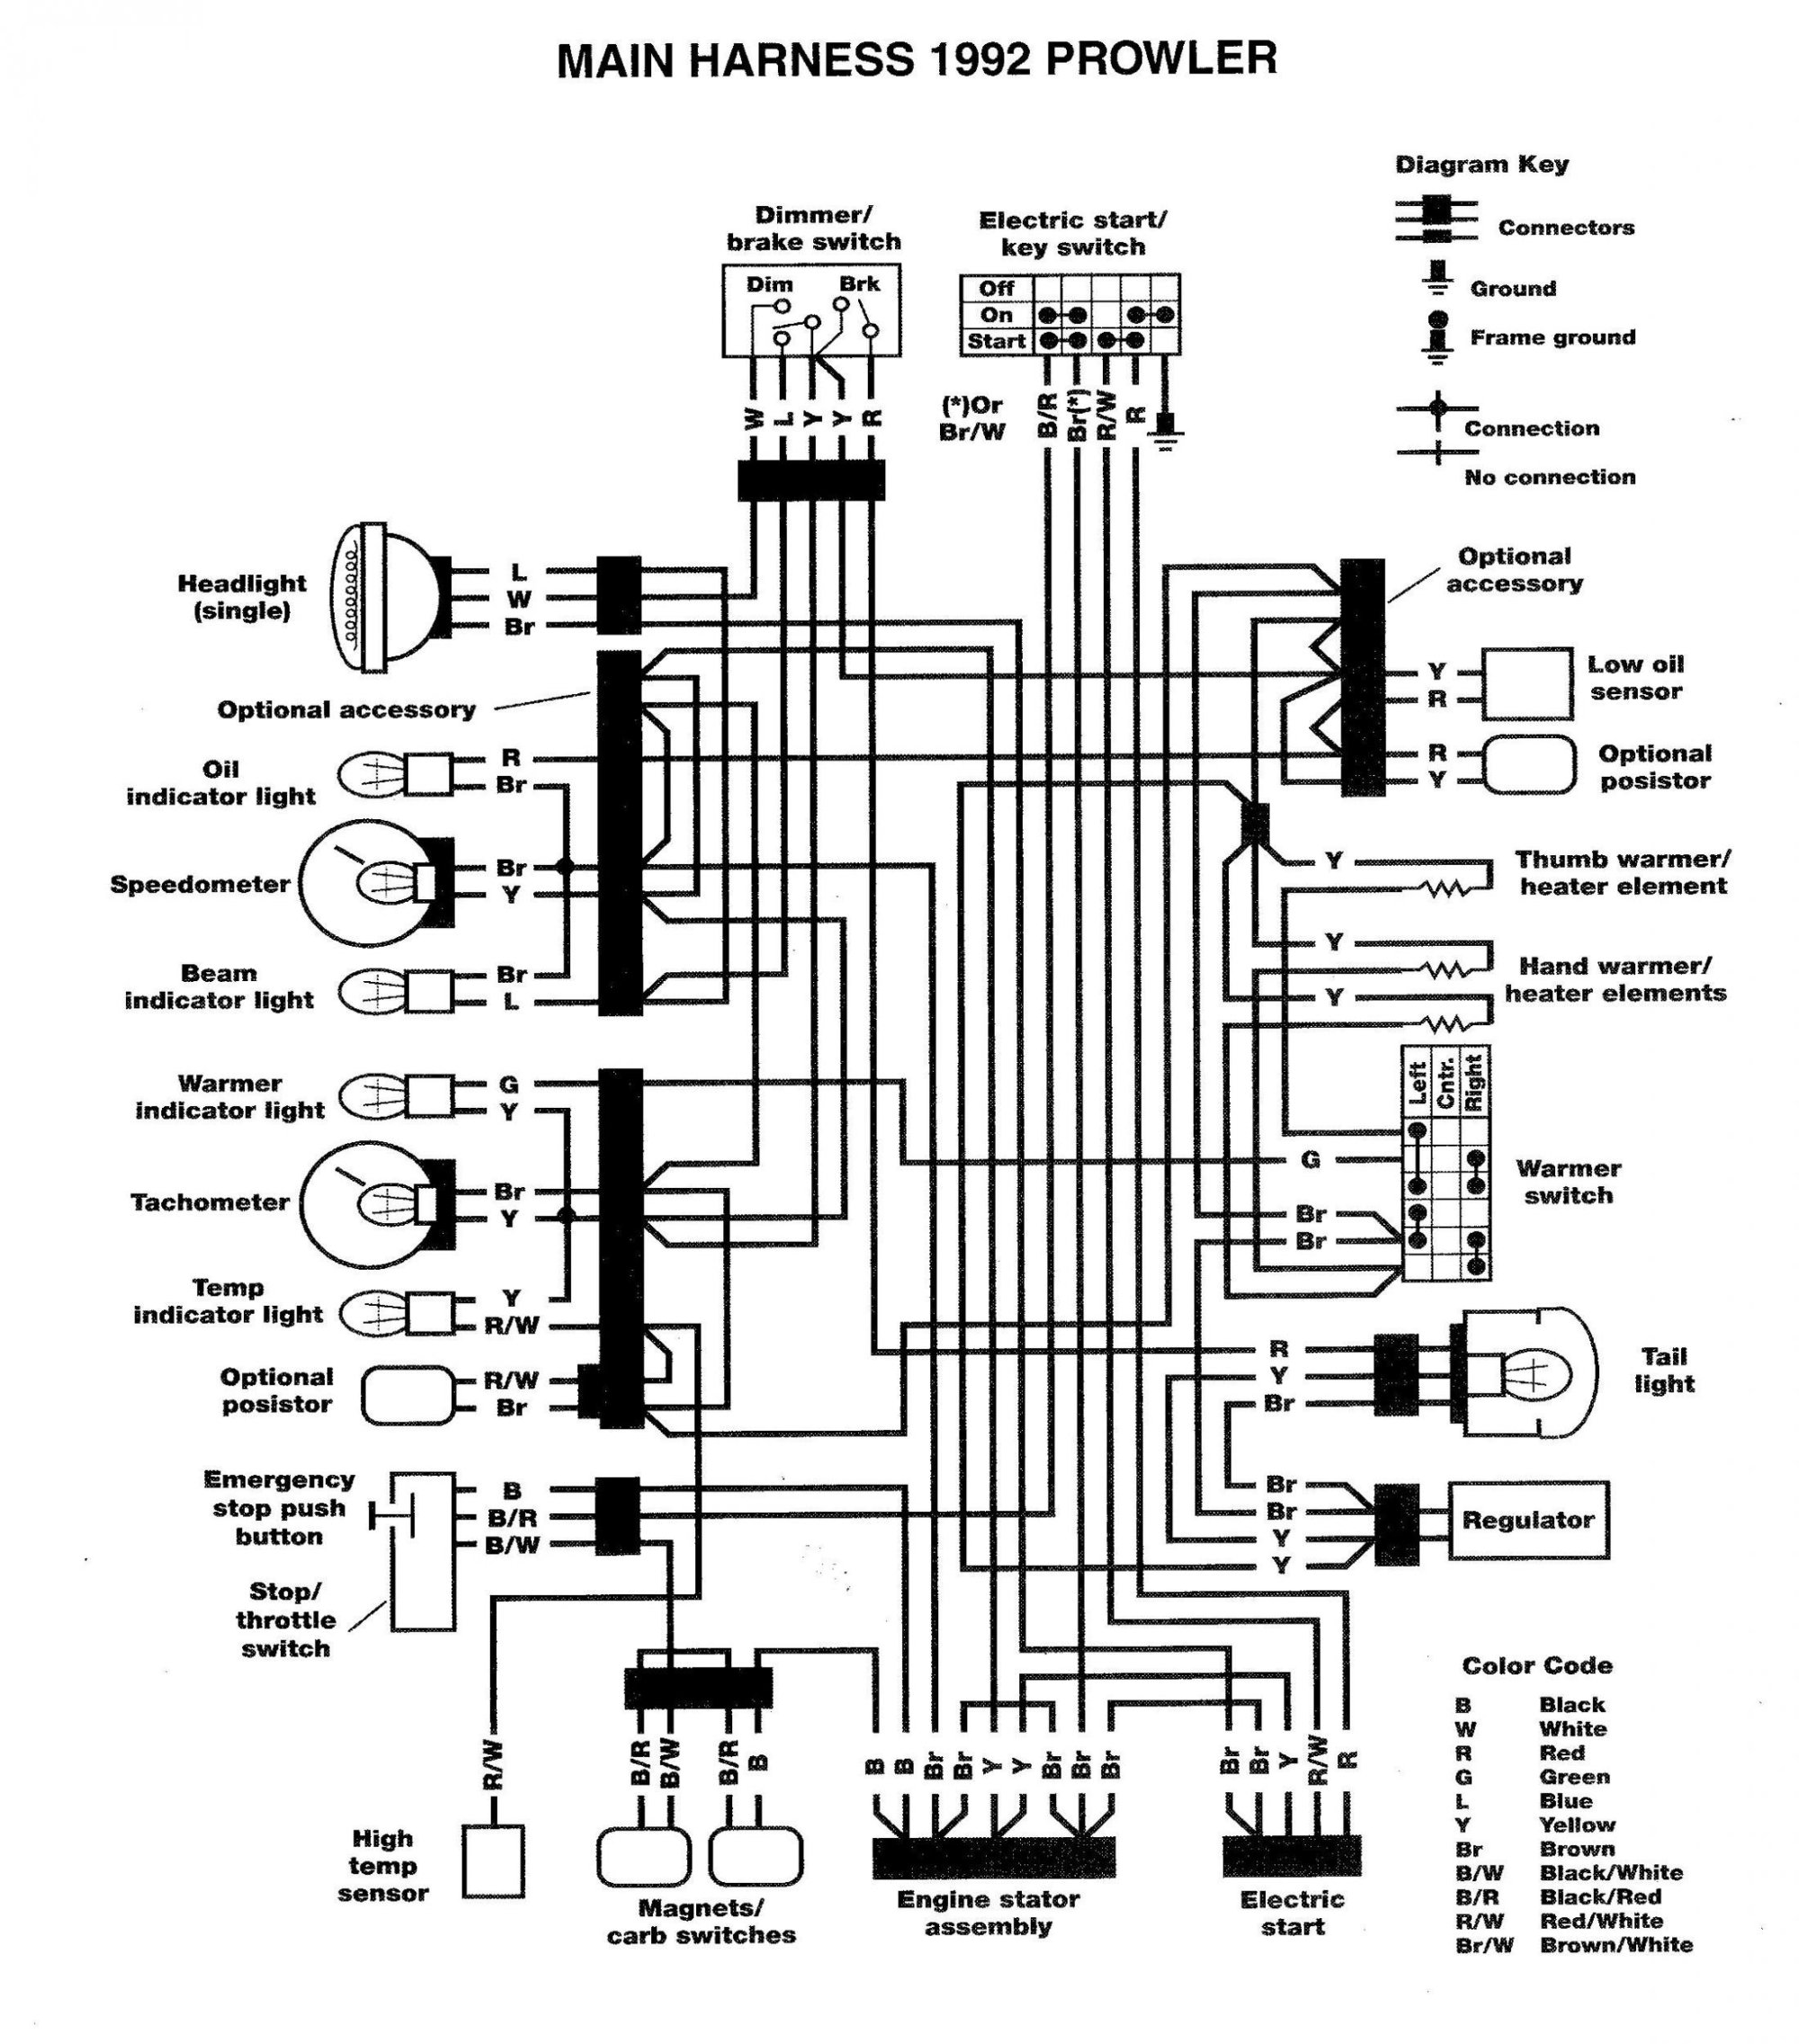 hight resolution of 98 kawasaki 300 wiring diagram data diagram schematic 98 kawasaki 300 wiring diagram